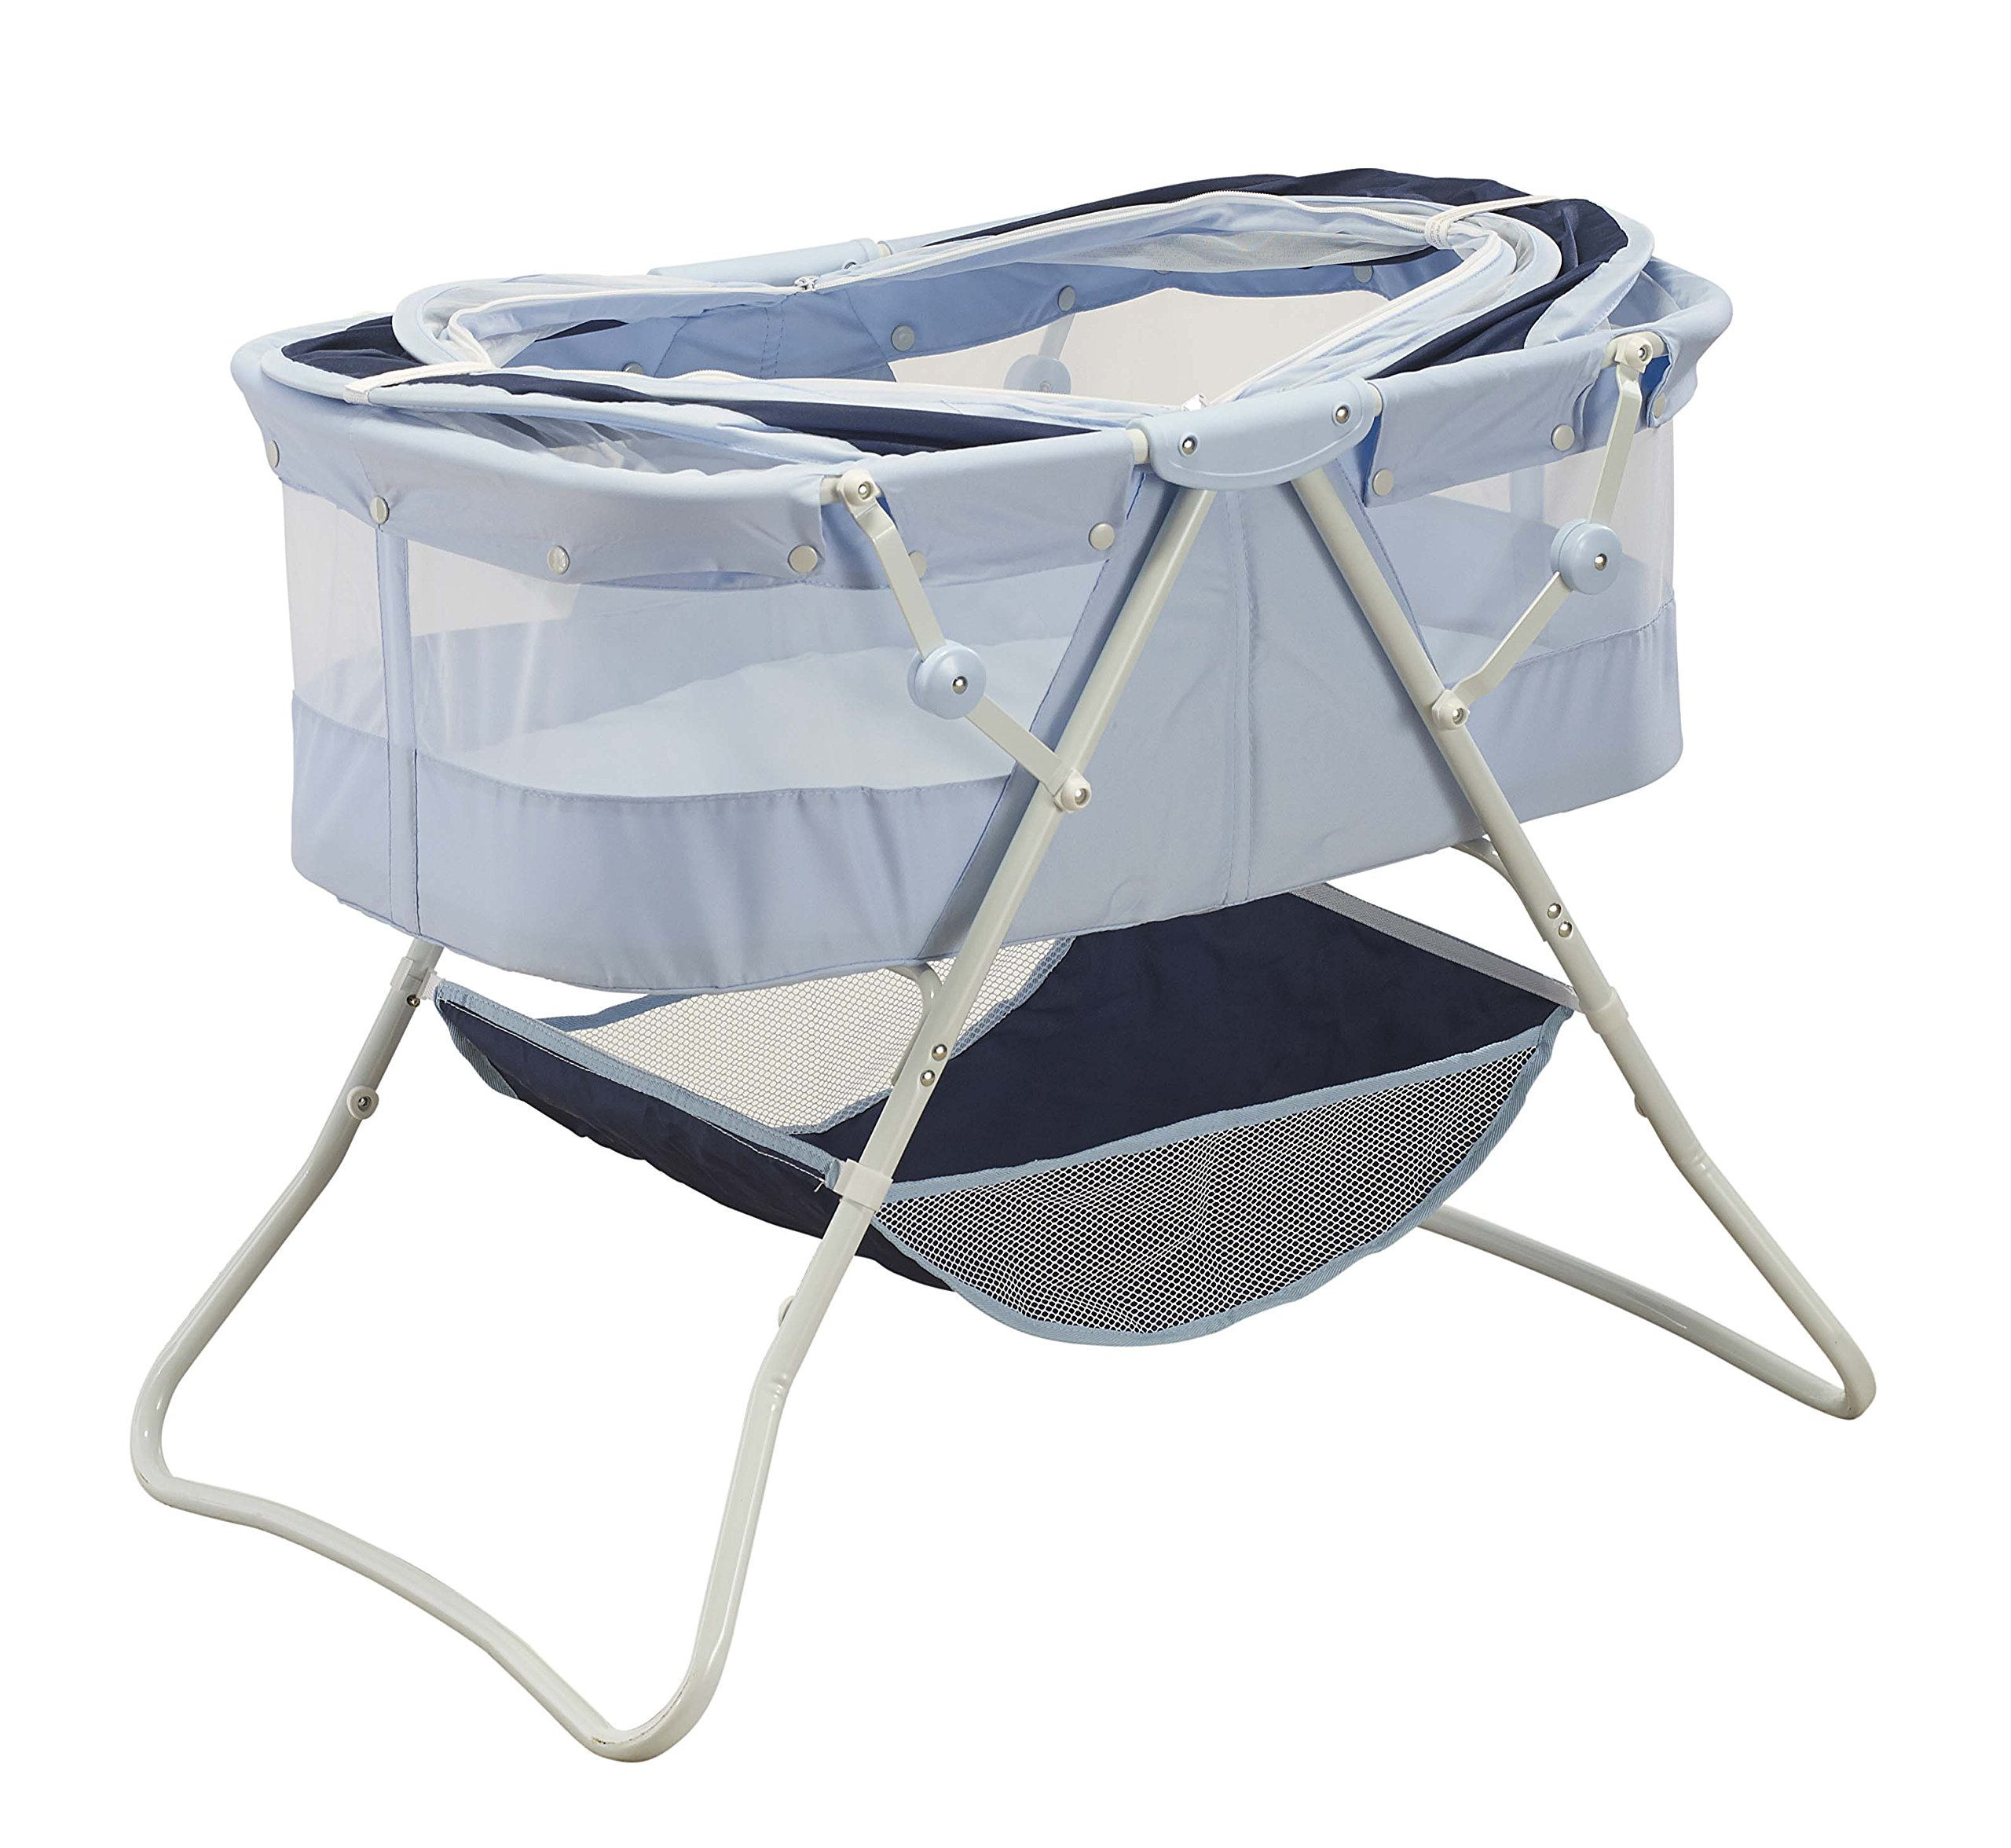 Big Oshi Emma Newborn Baby Bassinet - Portable Co Sleeper Bassinet for Boys or Girls - Perfect for Bedside, Indoors, or Outdoors - Lightweight for Travel - Canopy Netting - Wood Bed Base, Navy